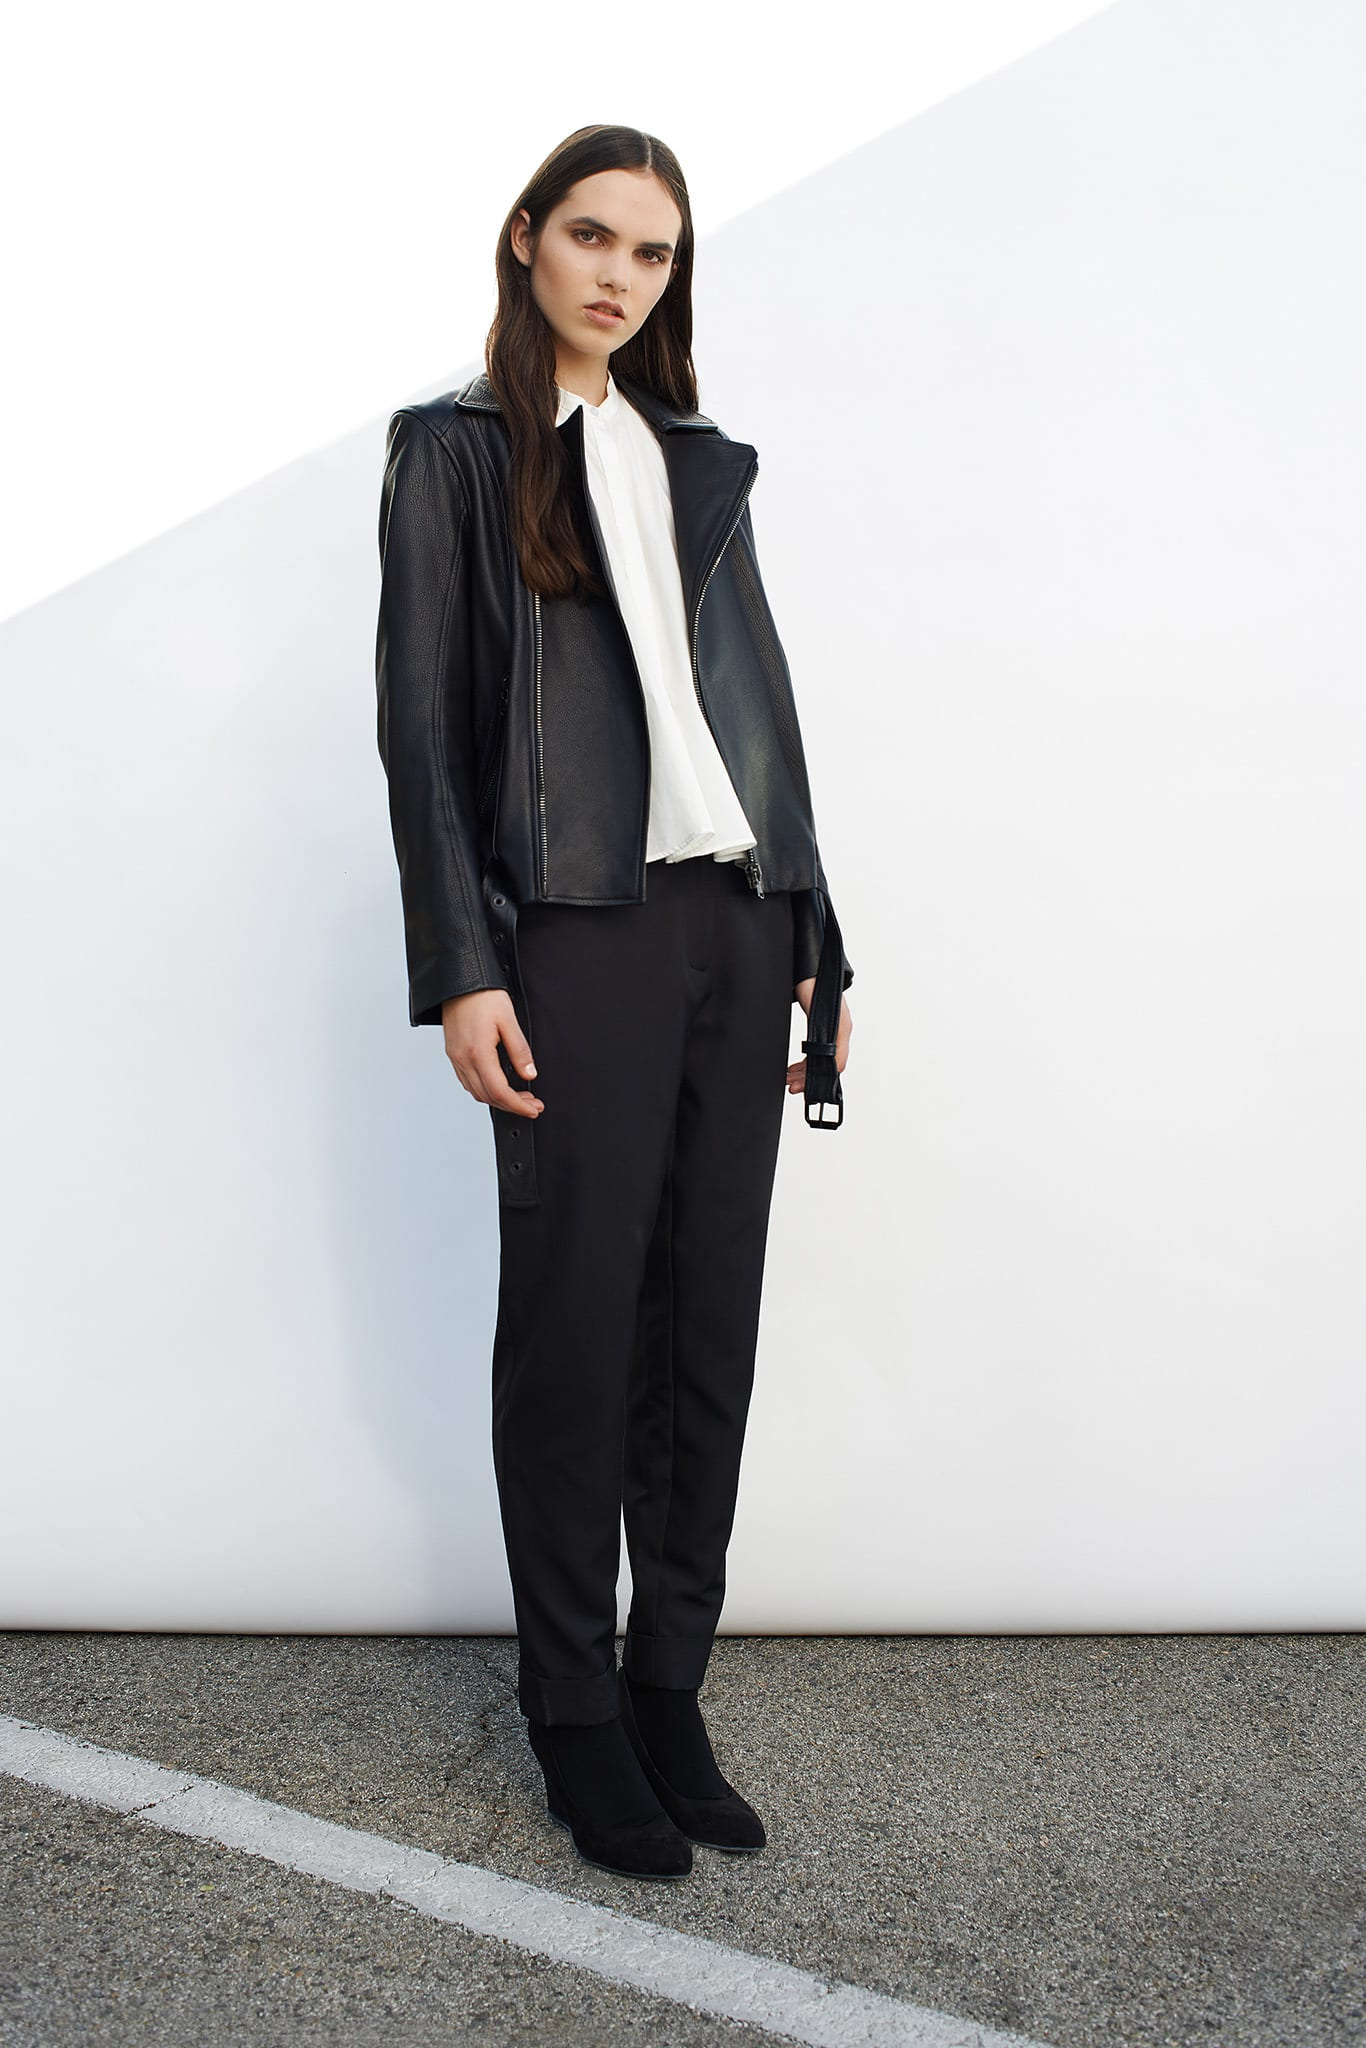 StyleAndMinimalism | Collection Best Bits | Cerre AW14 | Black leather biker jacket, white shirt & black tailored trousers